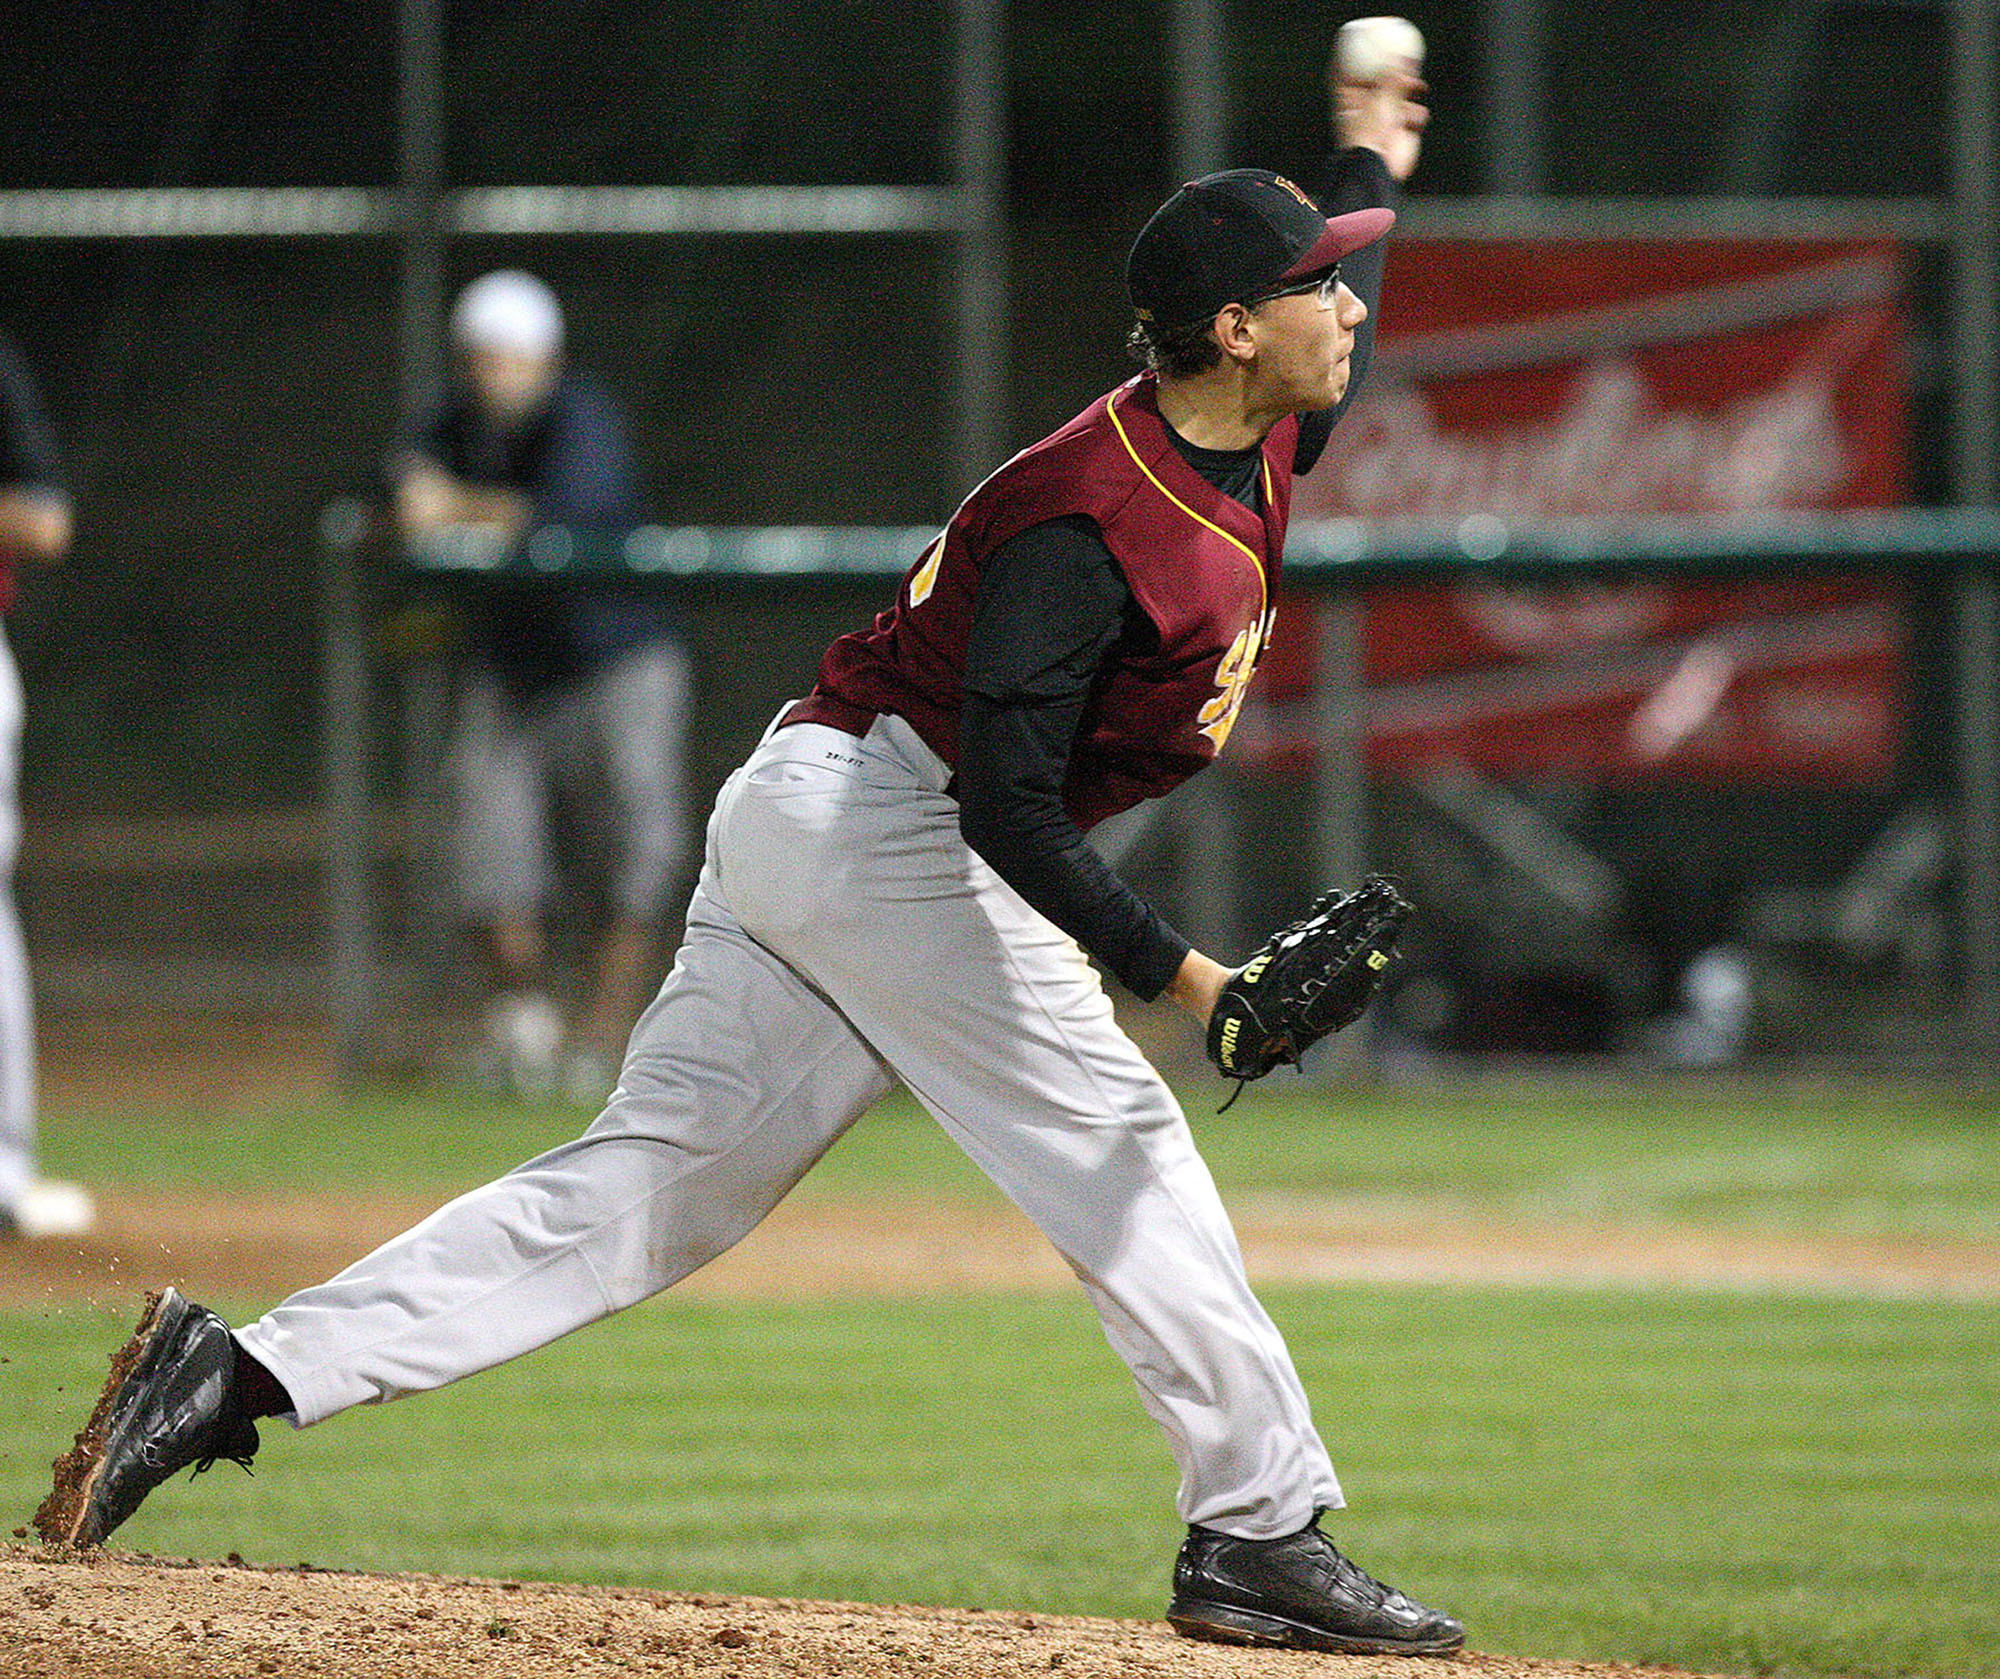 La Cañada pitcher Justin Lewis throws a pitch during a game at Stengel Field on Tuesday, March 4, 2014.